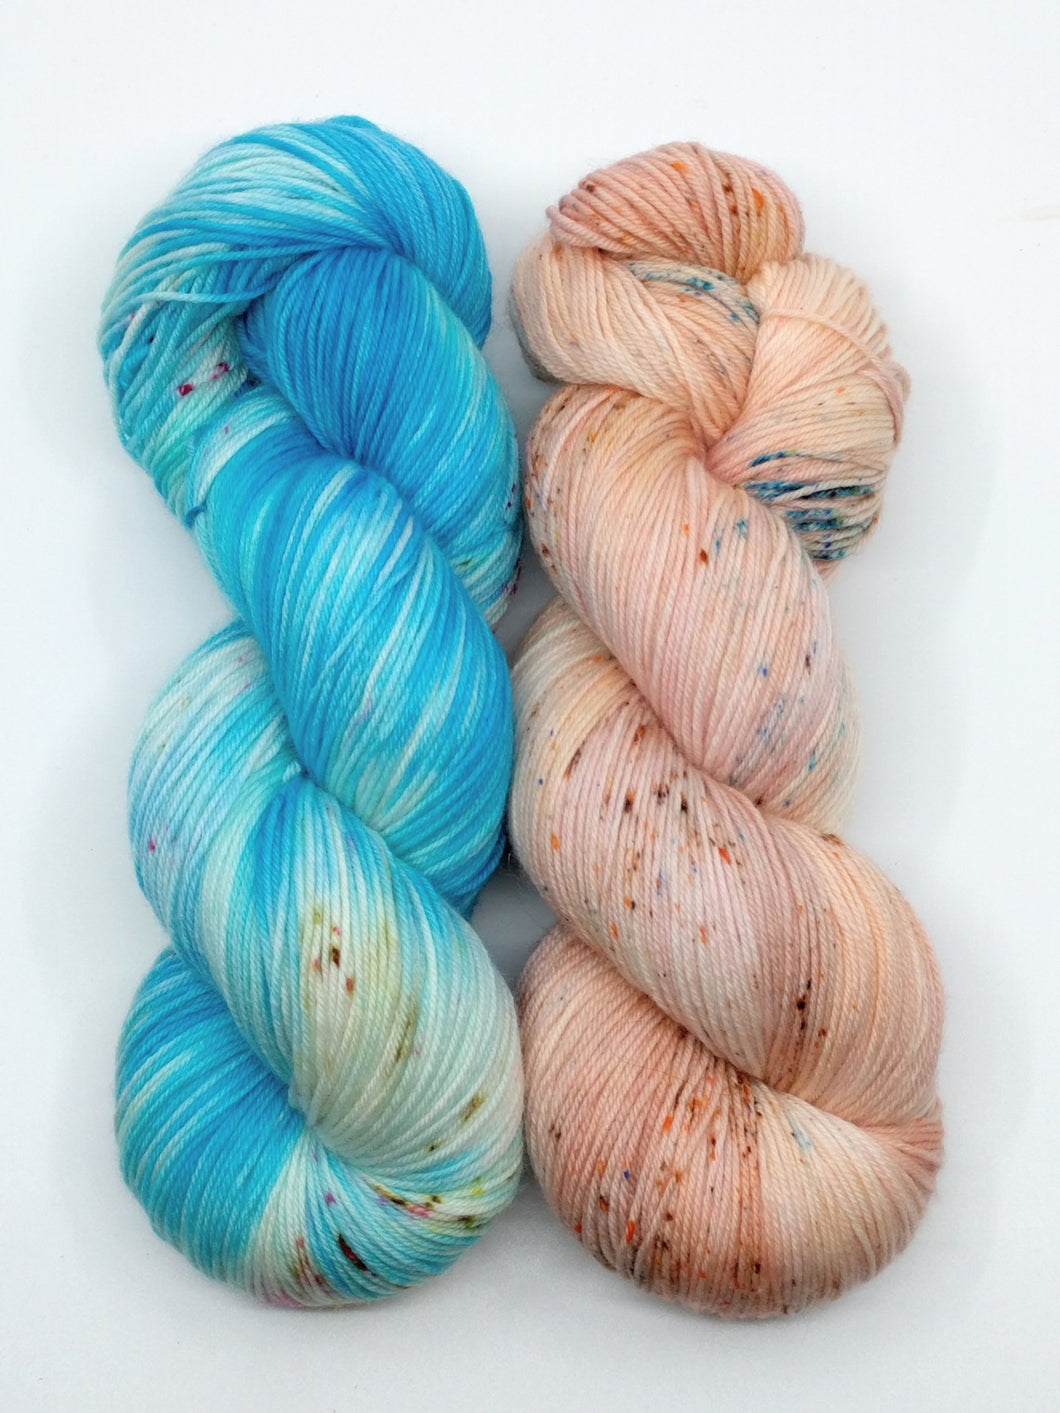 TROPICAL FLORIDA SURF & SHELLS - Merino Twist kit